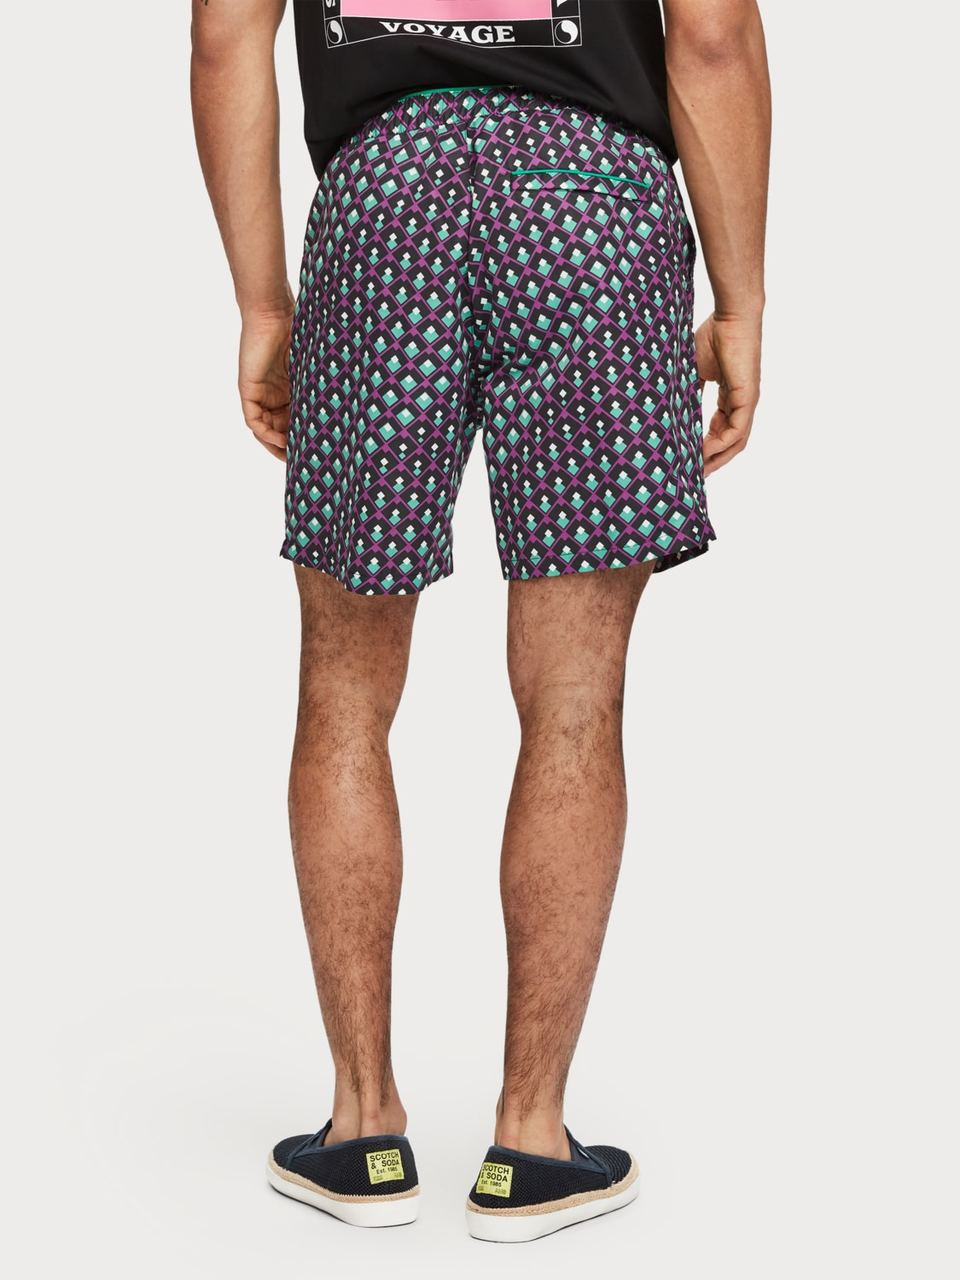 Scotch /& Soda Mens Medium Length Swim Short in Cotton//Nylon Quality with All-ov